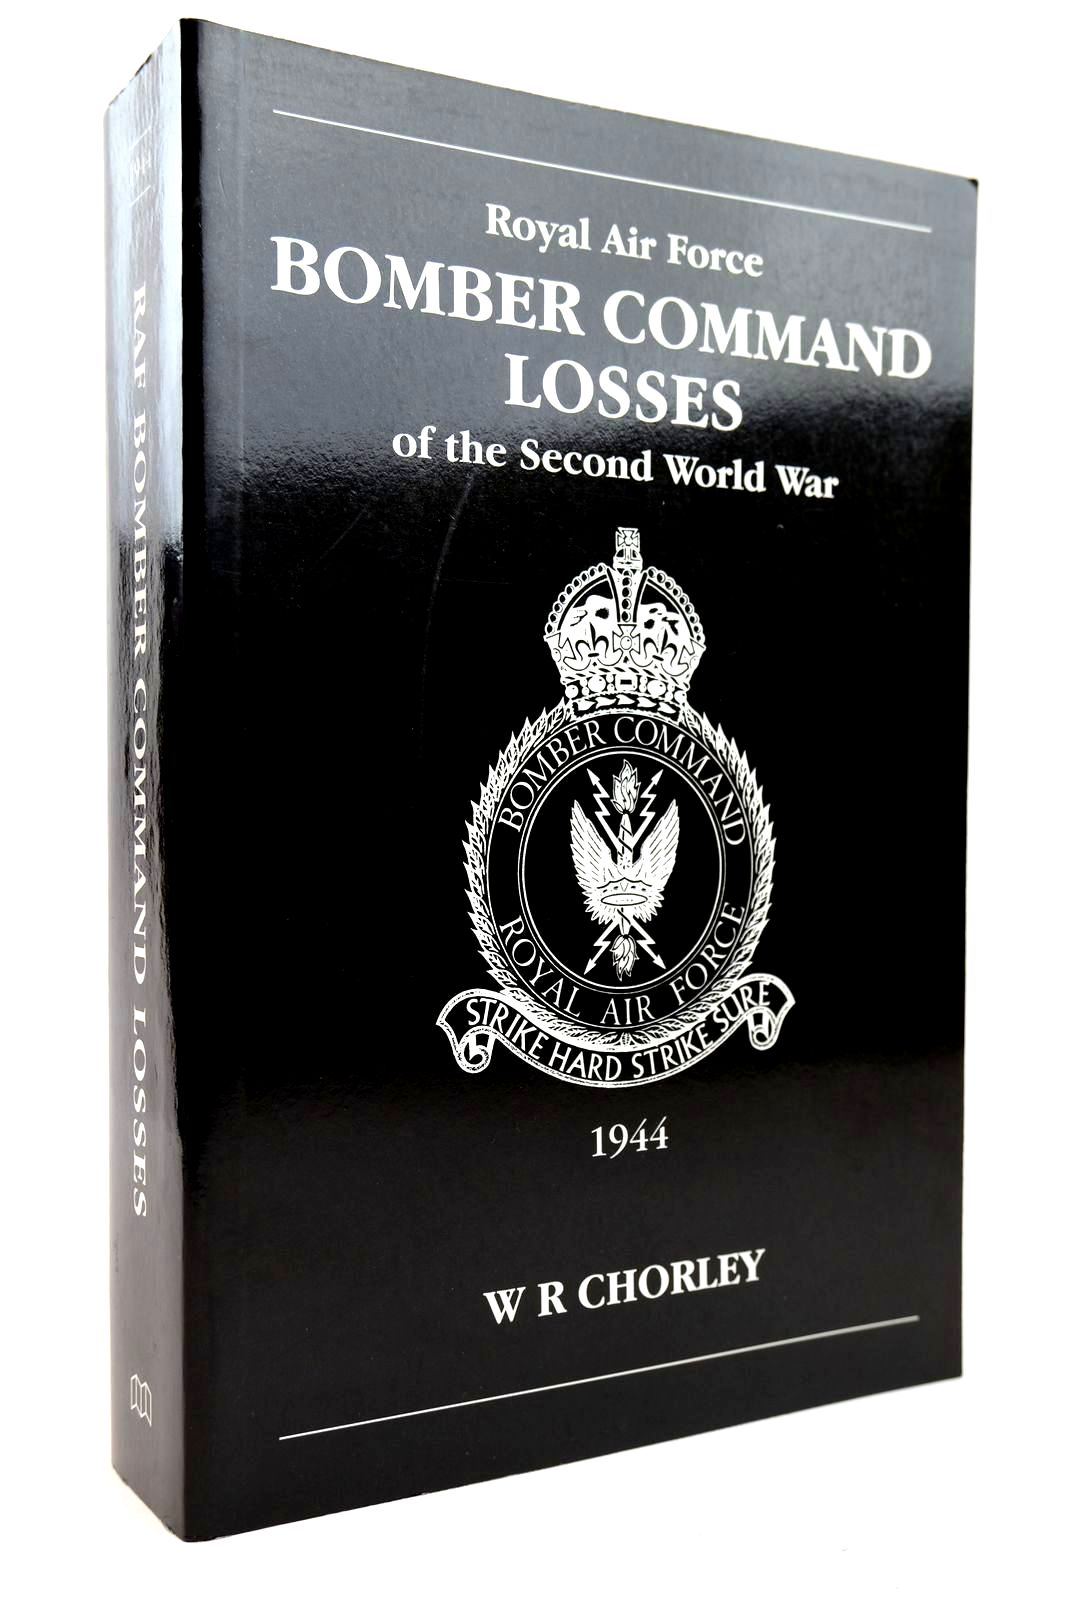 Photo of ROYAL AIR FORCE BOMBER COMMAND LOSSES OF THE SECOND WORLD WAR VOLUME 5 written by Chorley, W.R. published by Midland Publishing (STOCK CODE: 2132033)  for sale by Stella & Rose's Books